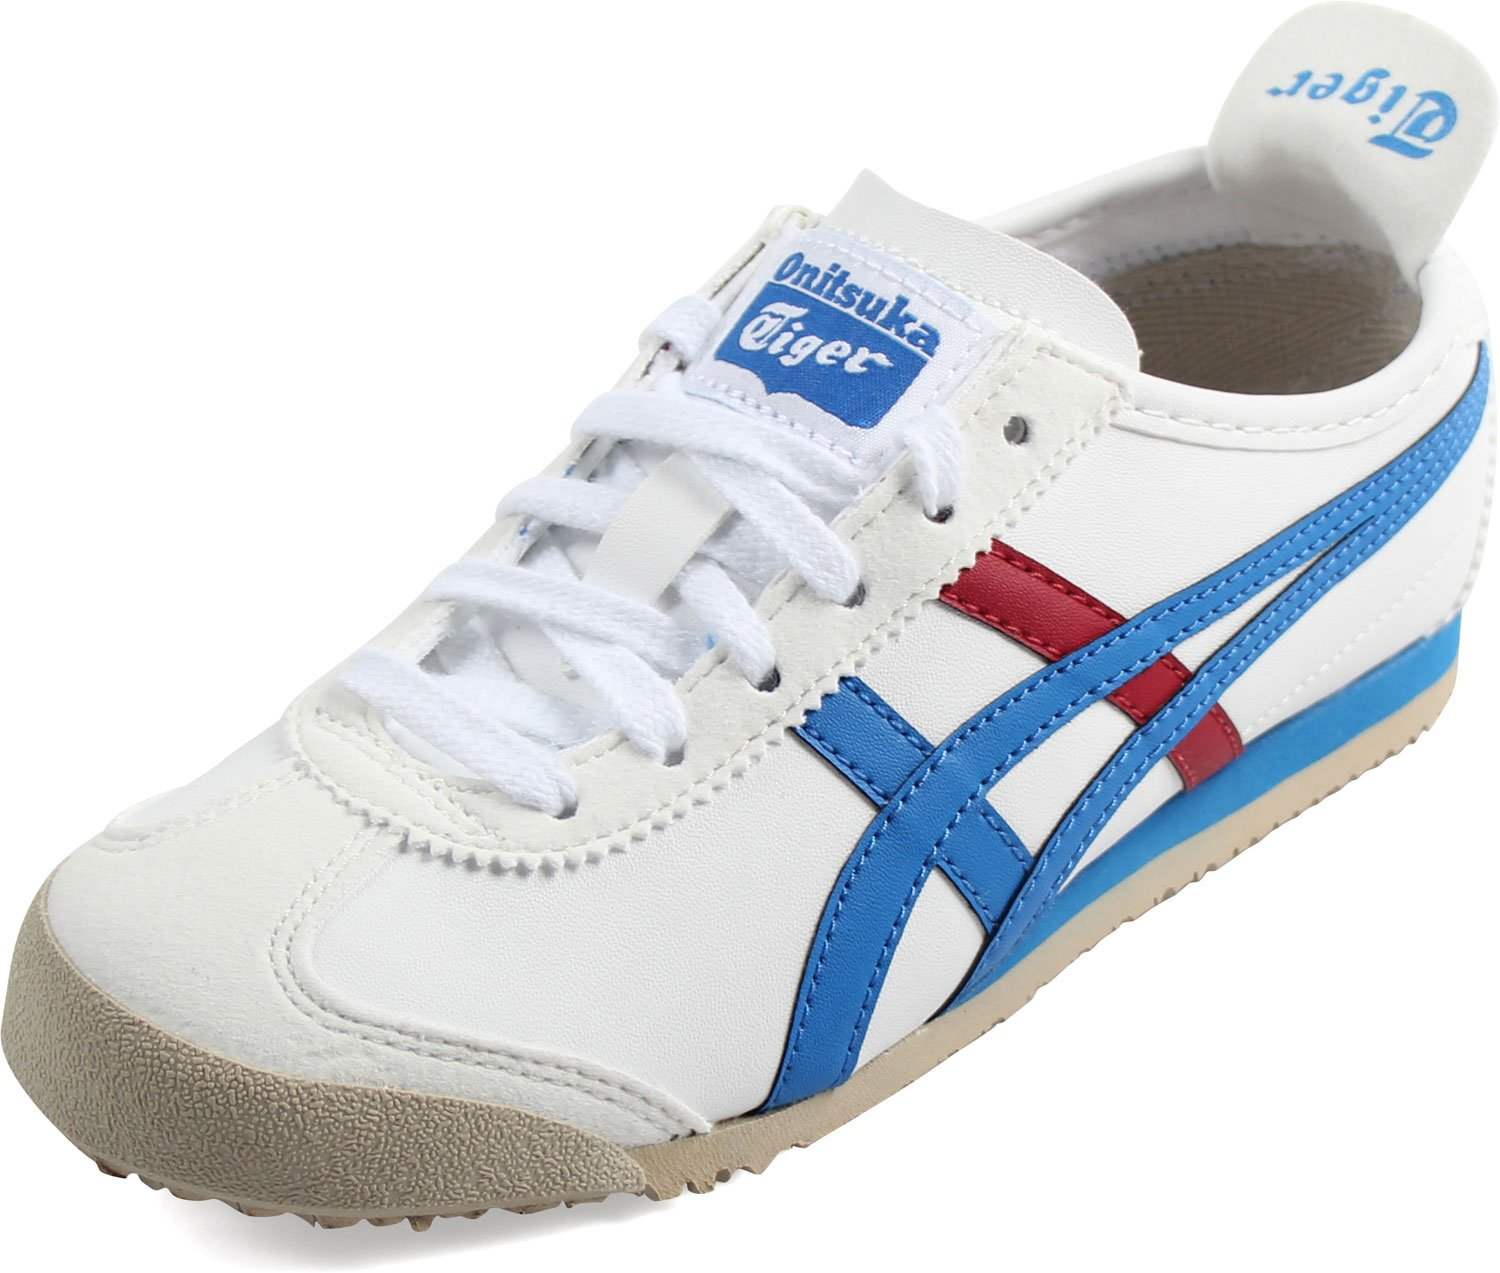 newest collection 02a3a 928c8 ASICS Mexico 66 Baja PS Running Shoe (Toddler/Little Kid), White/Mid Blue,  1 M US Little Kid